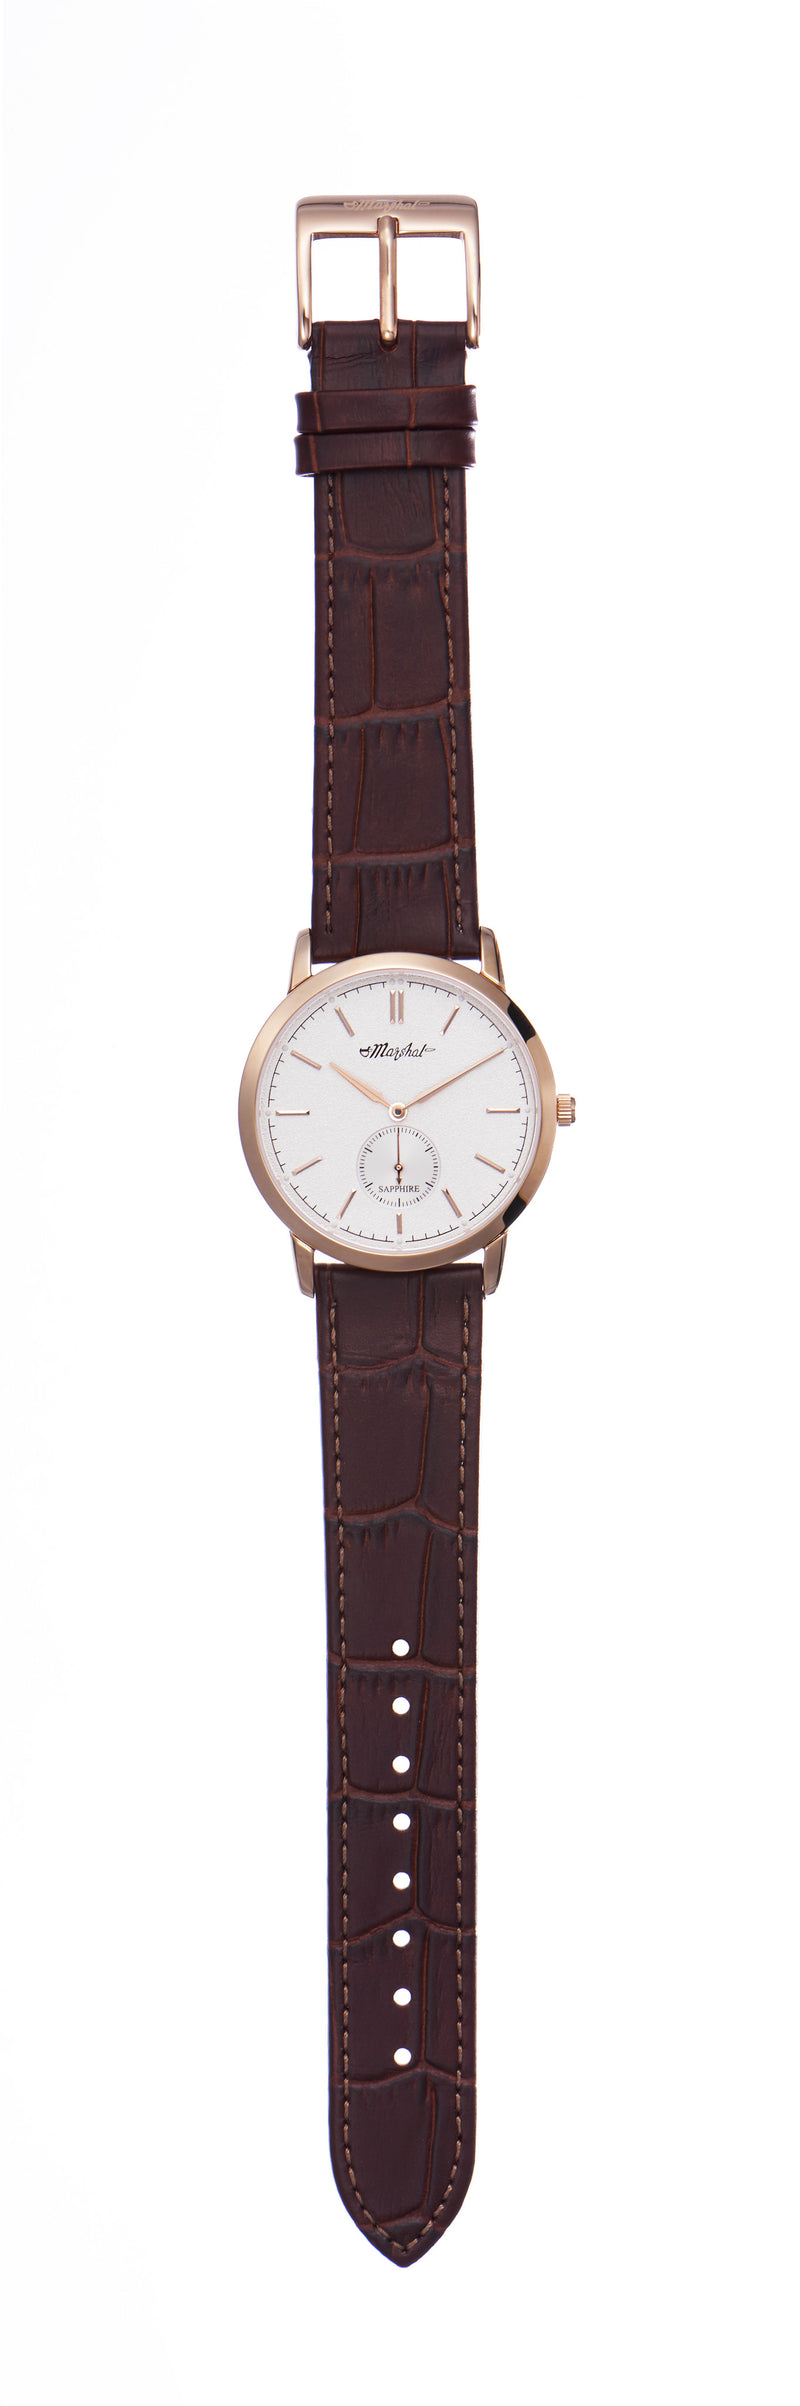 MARSHAL WATCH ROCHESTER 1193R RG/WH